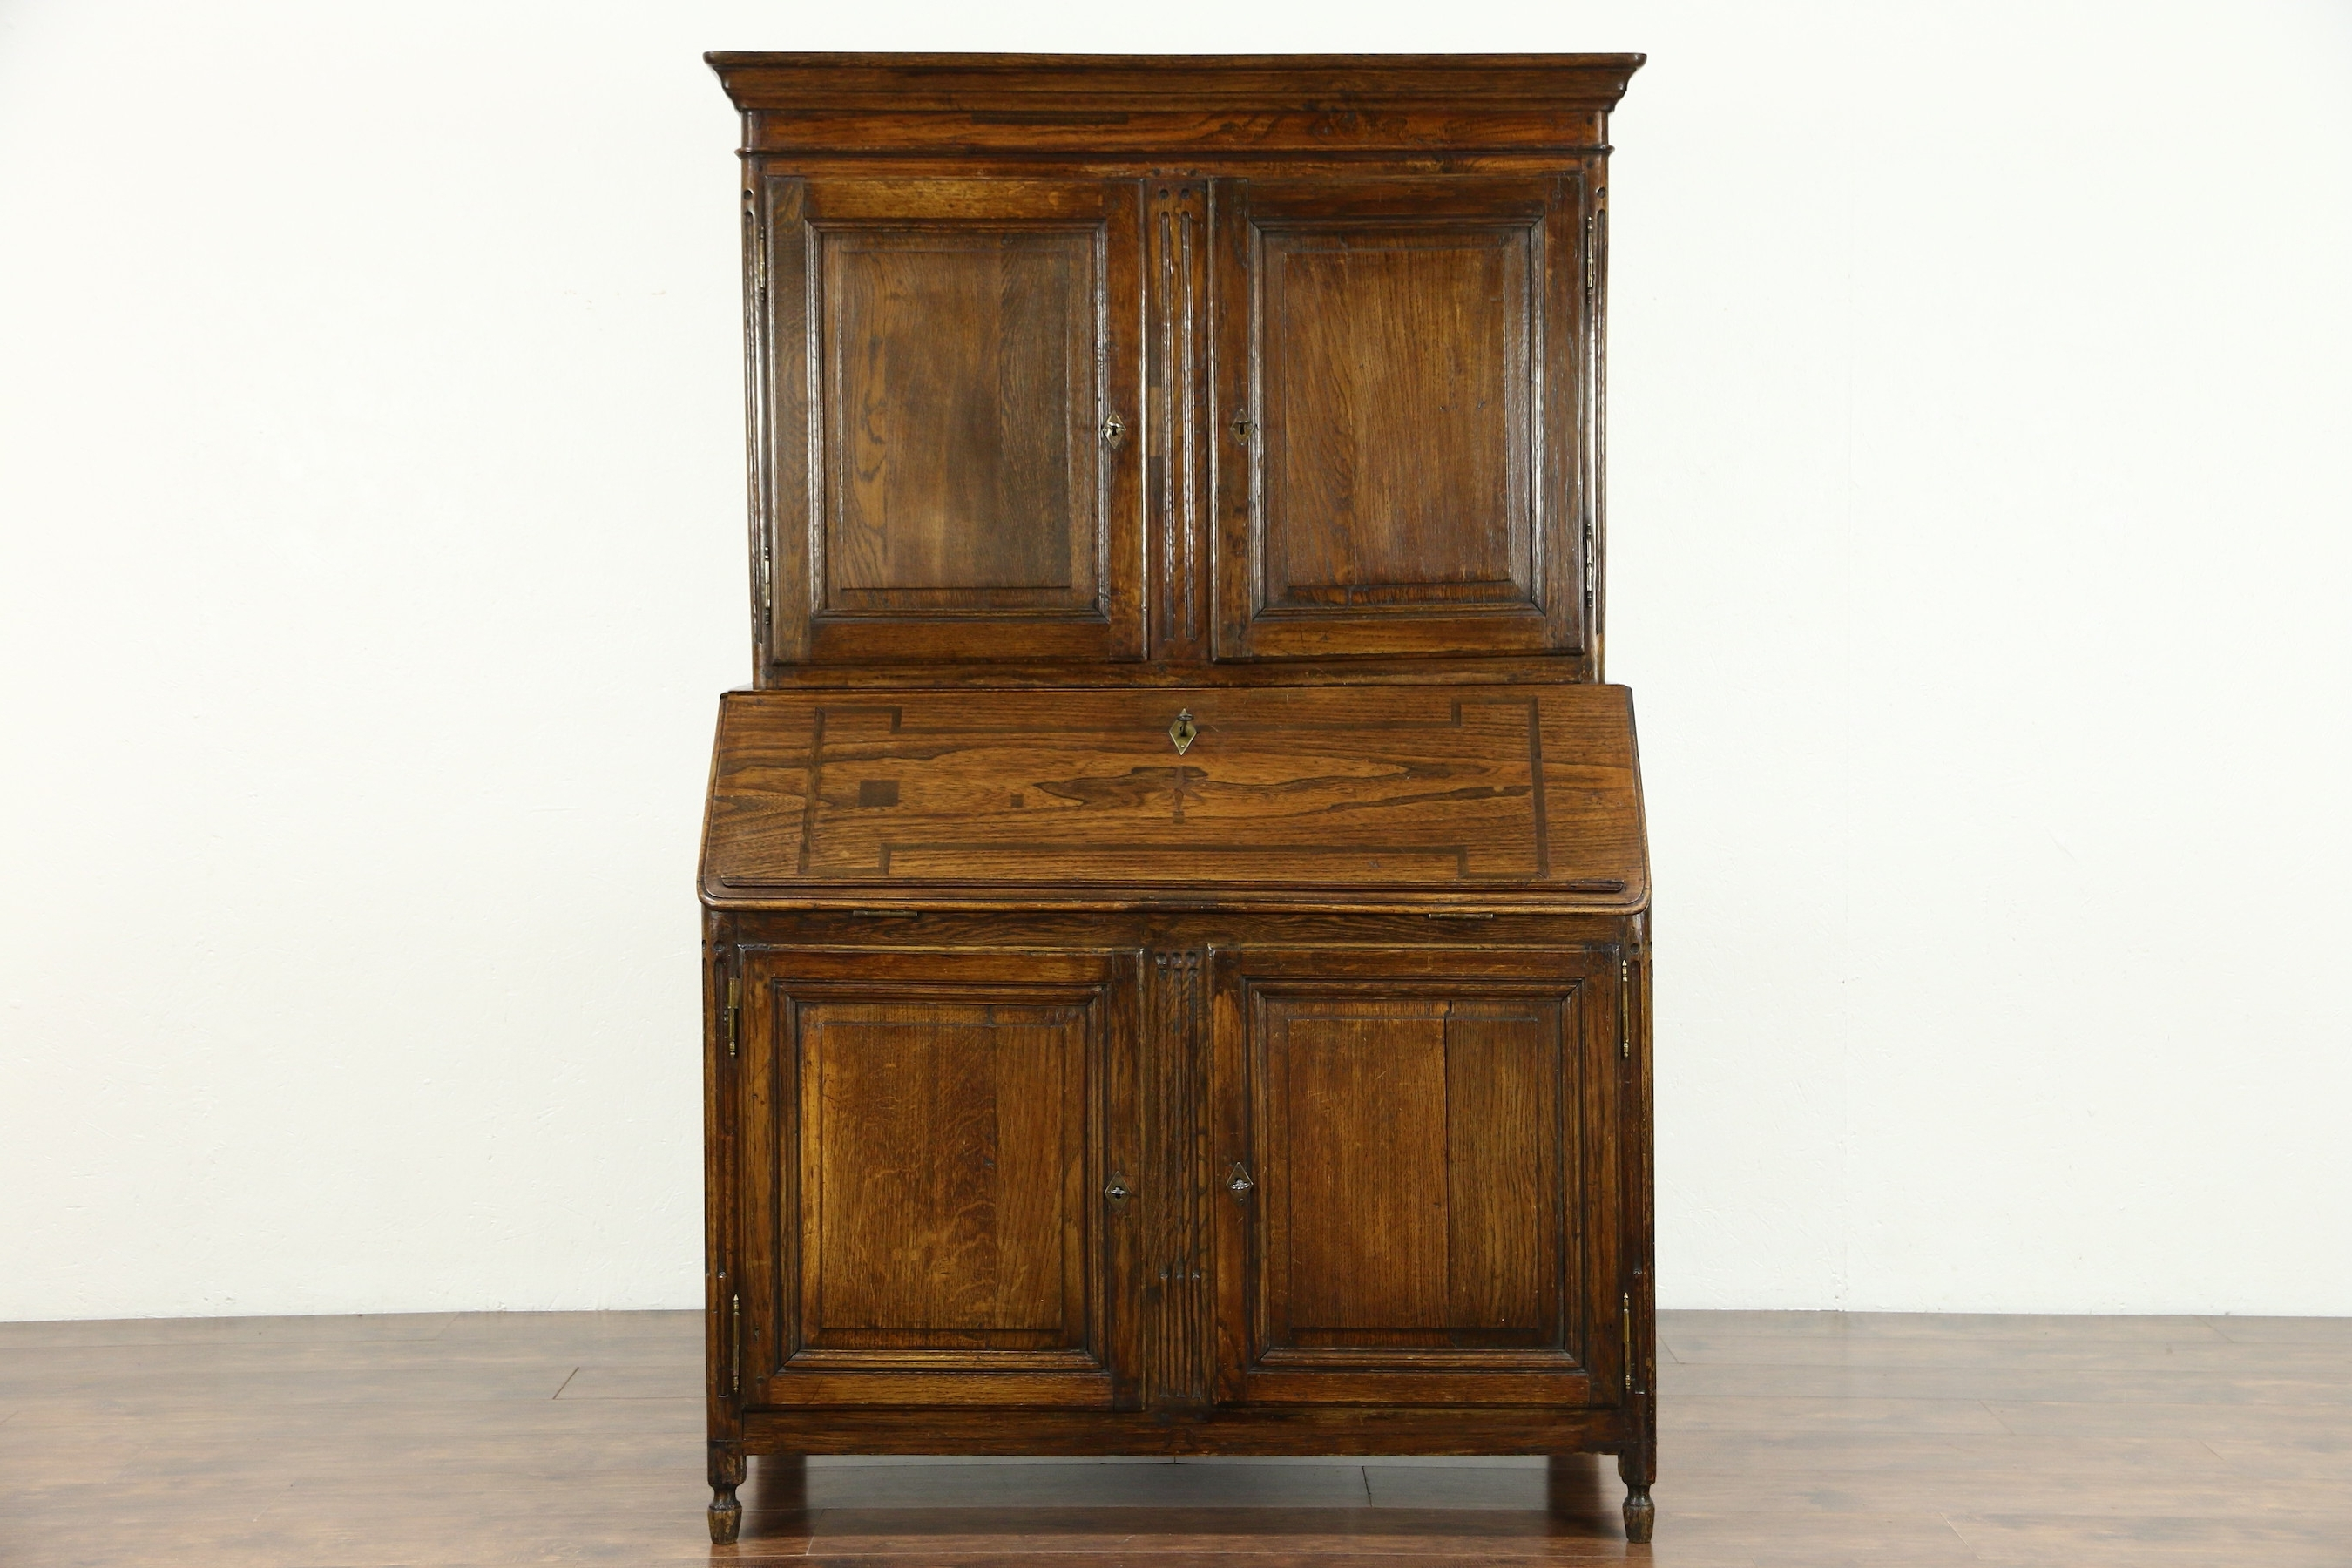 Antique Secretary Desk With Bookcases Pertaining To Latest Sold – Dutch Antique 1780 Rustic Oak Hand Crafted Secretary Desk (View 15 of 15)